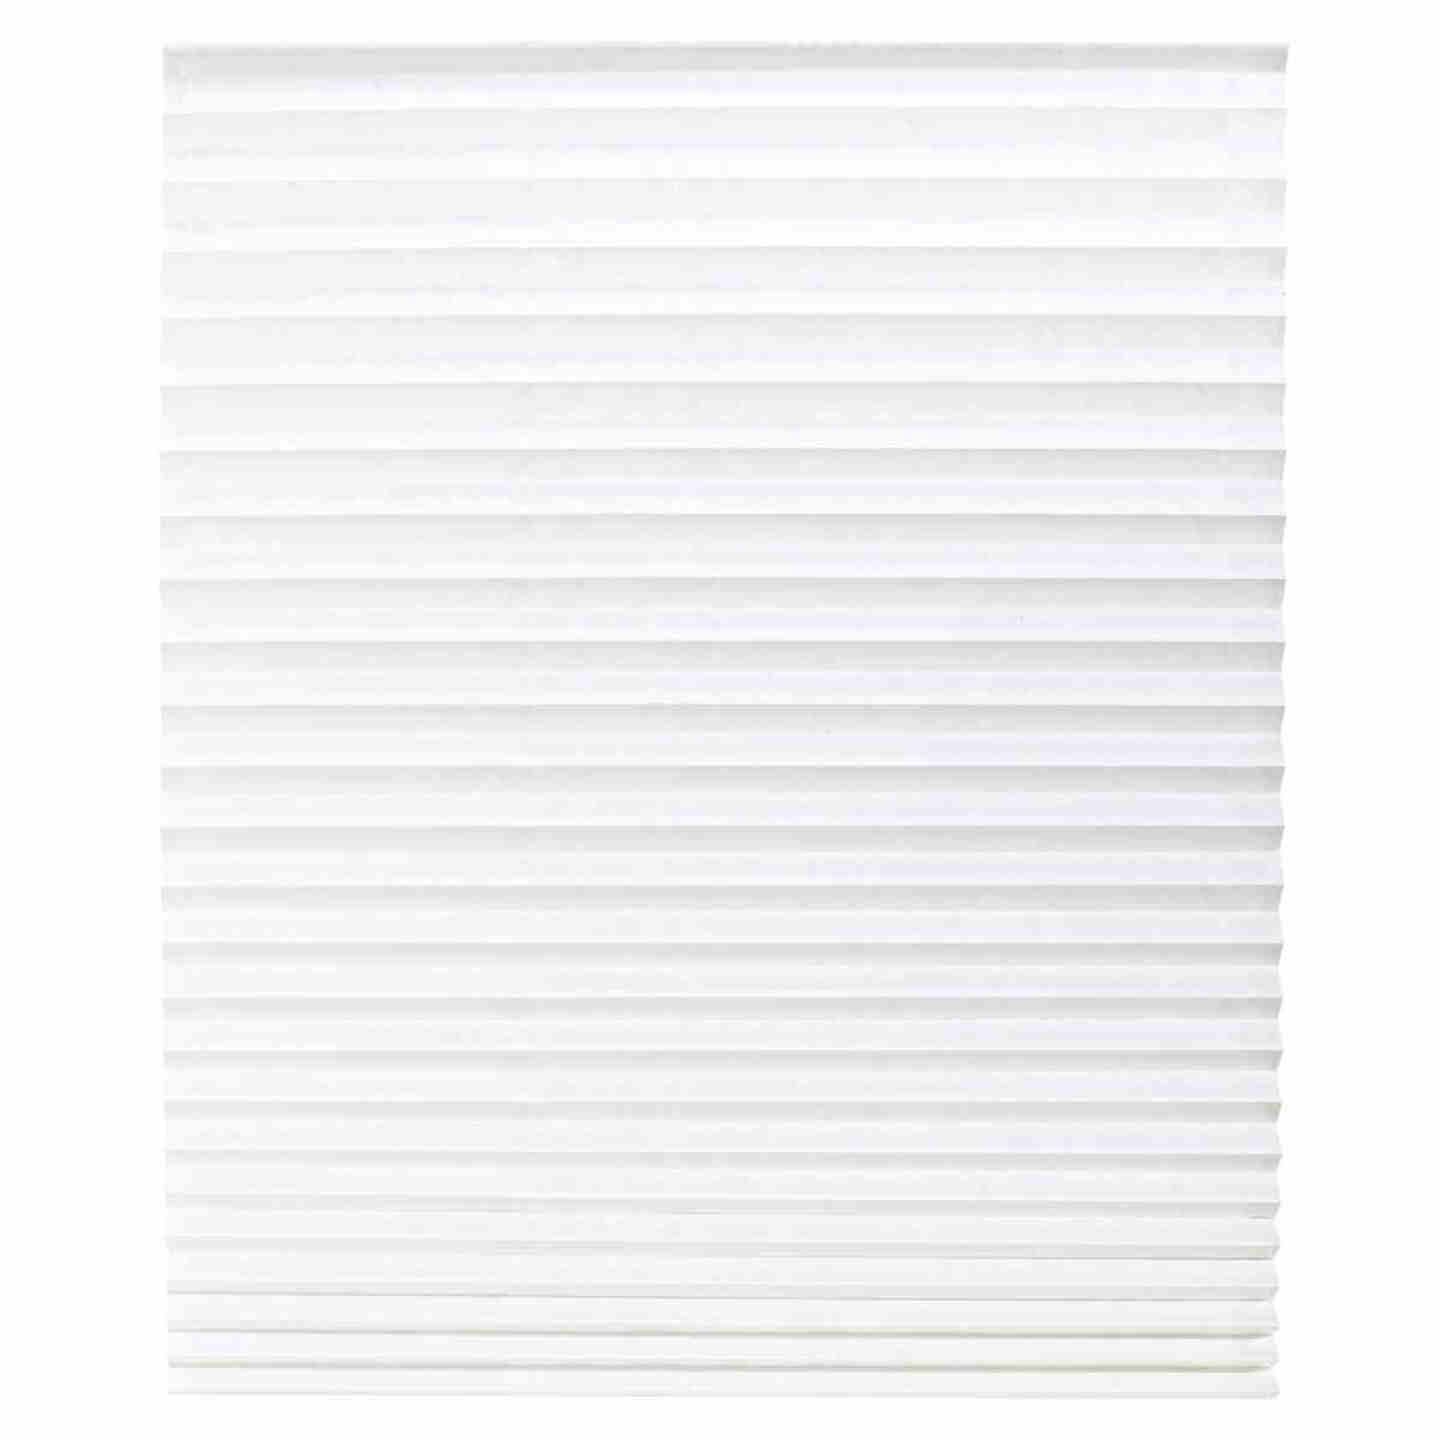 Redi Shade 36 In. x 72 In. Paper Shade Image 1